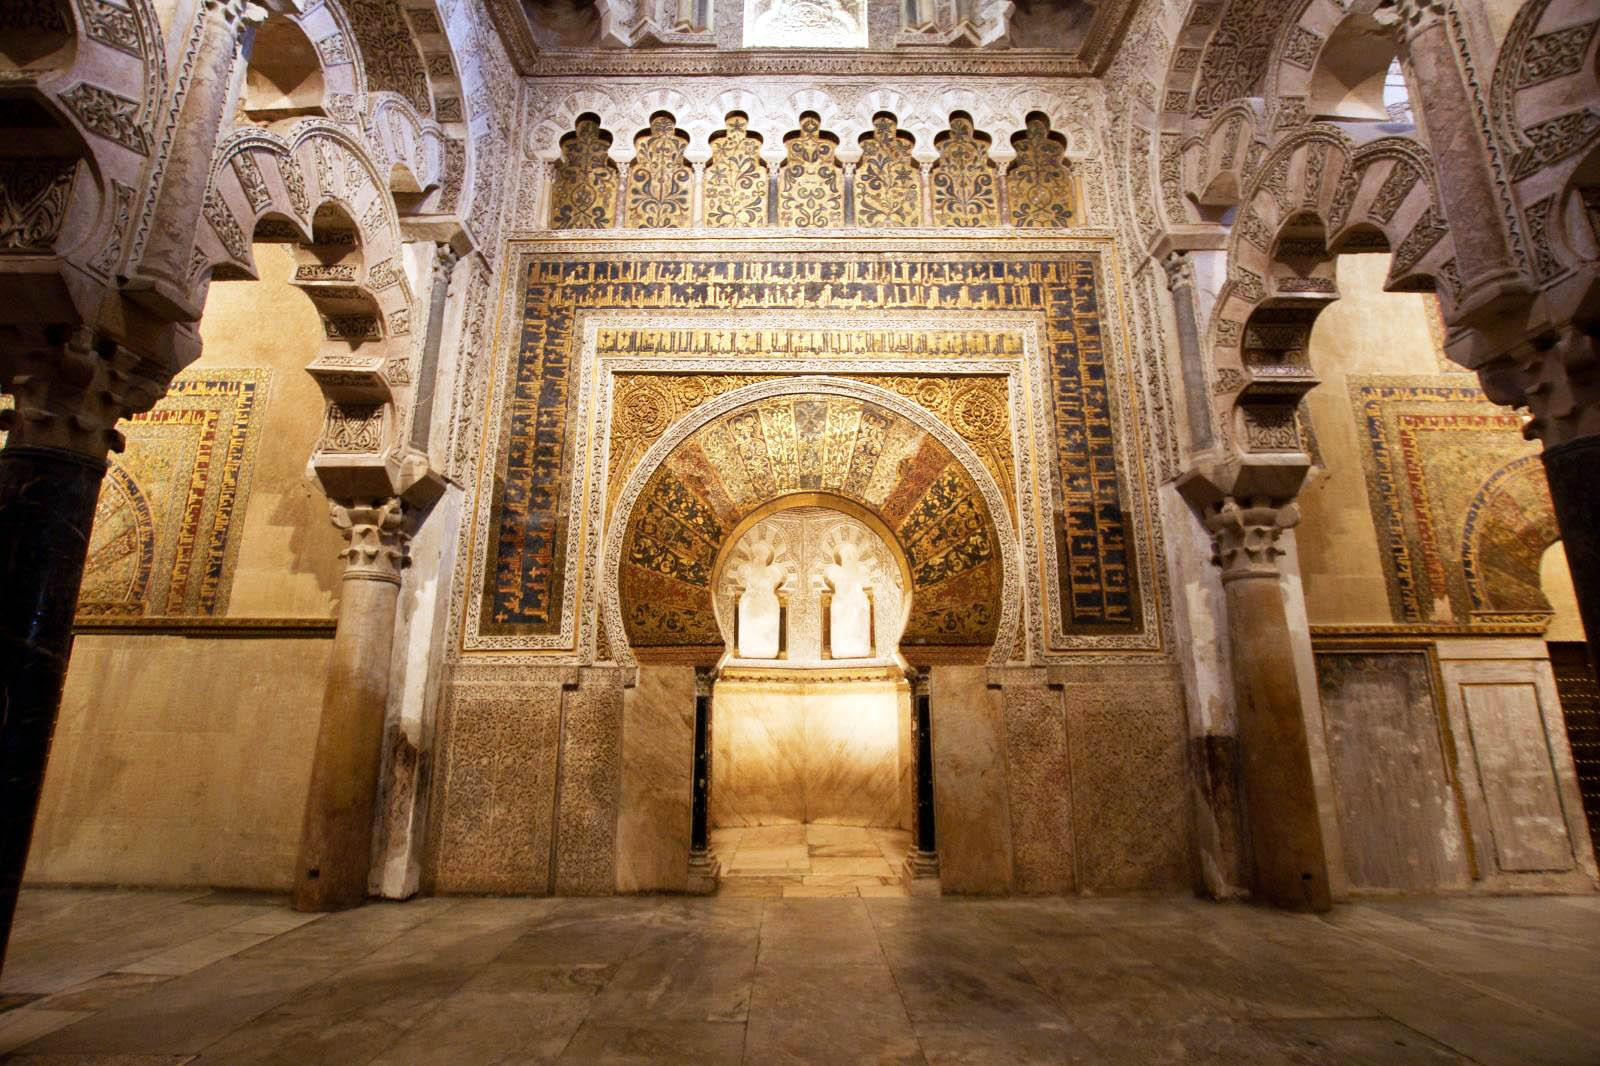 Guided-Tour-to-the-Mosque-of-Cordoba-1